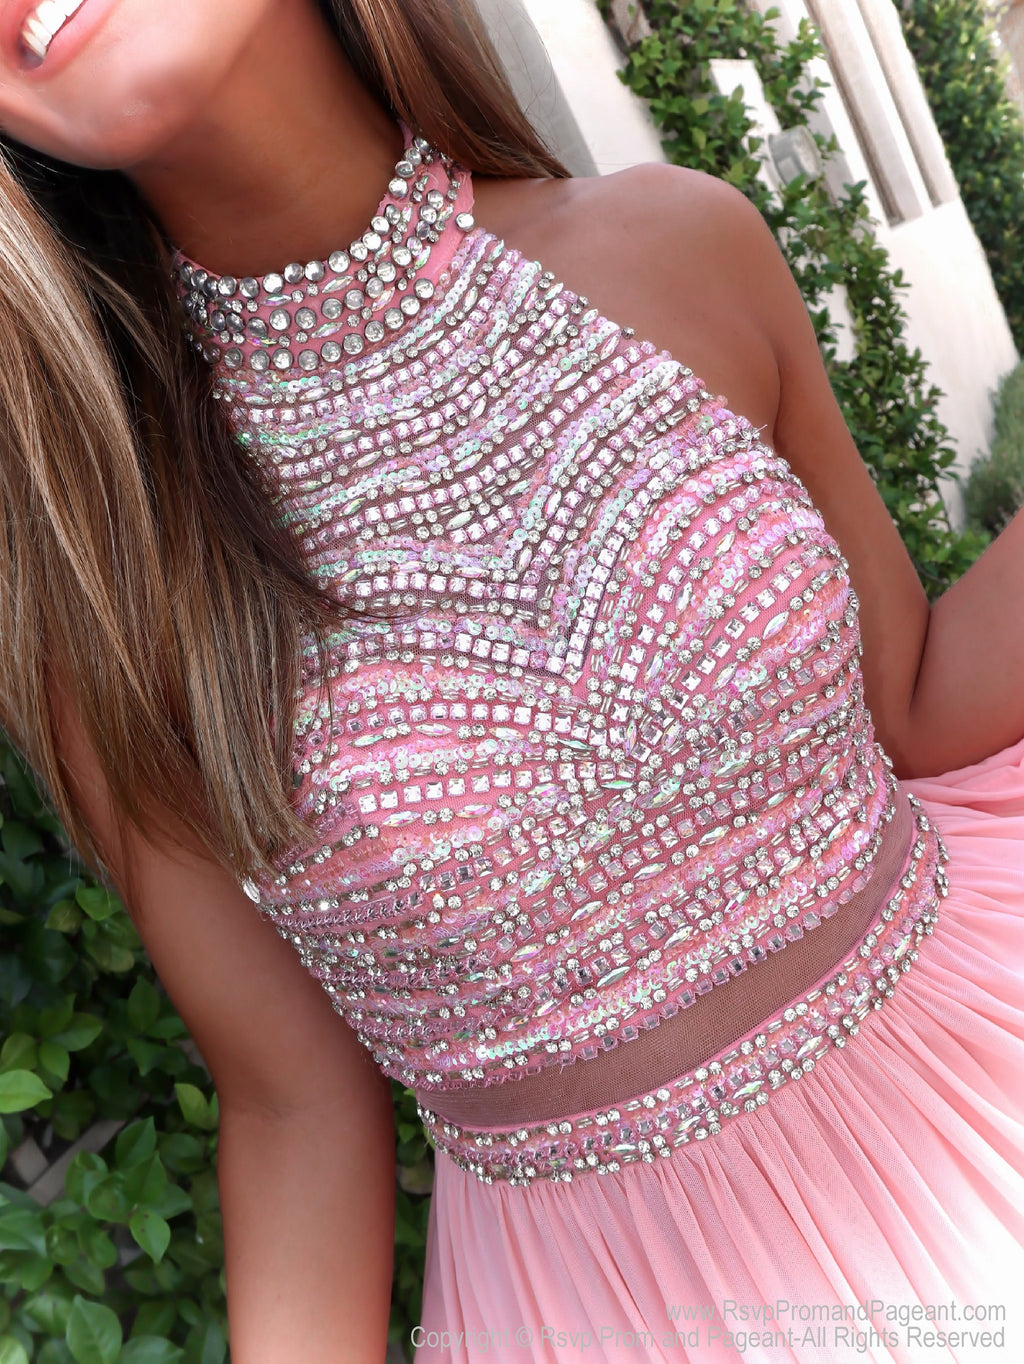 Close-up of beaded bodice of Awesome Chiffon Short Dress with Beaded Top at Rsvp Prom and Pageant, your source for the hottest prom, pageant and homecoming dresses, Atlanta, GA